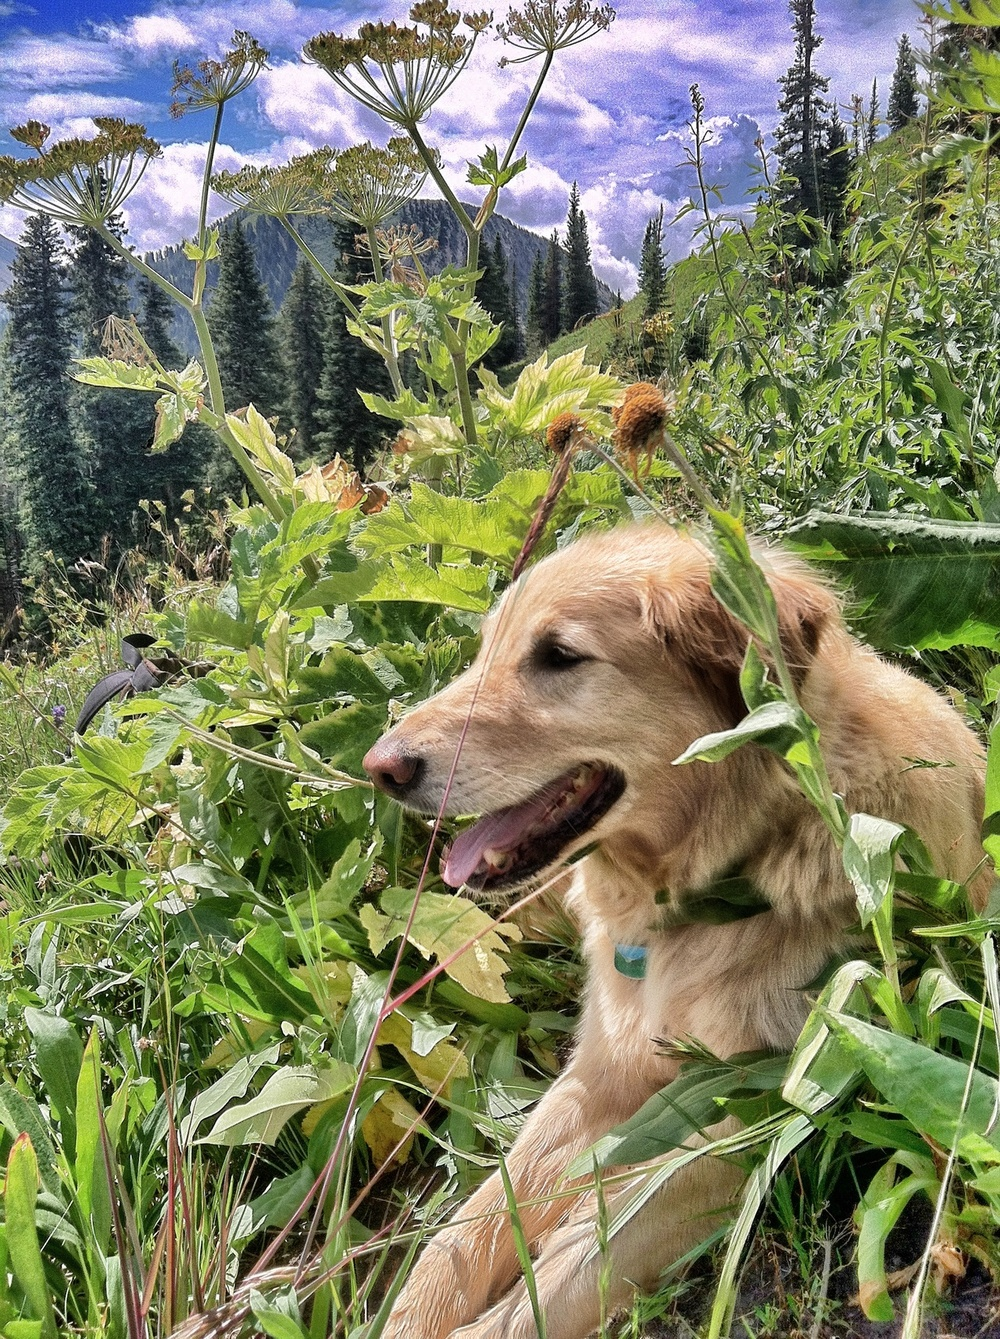 Sunday morning hike in Marble bowl. Ragged Mountains, CO.   Rilkey's such a poser-dog.